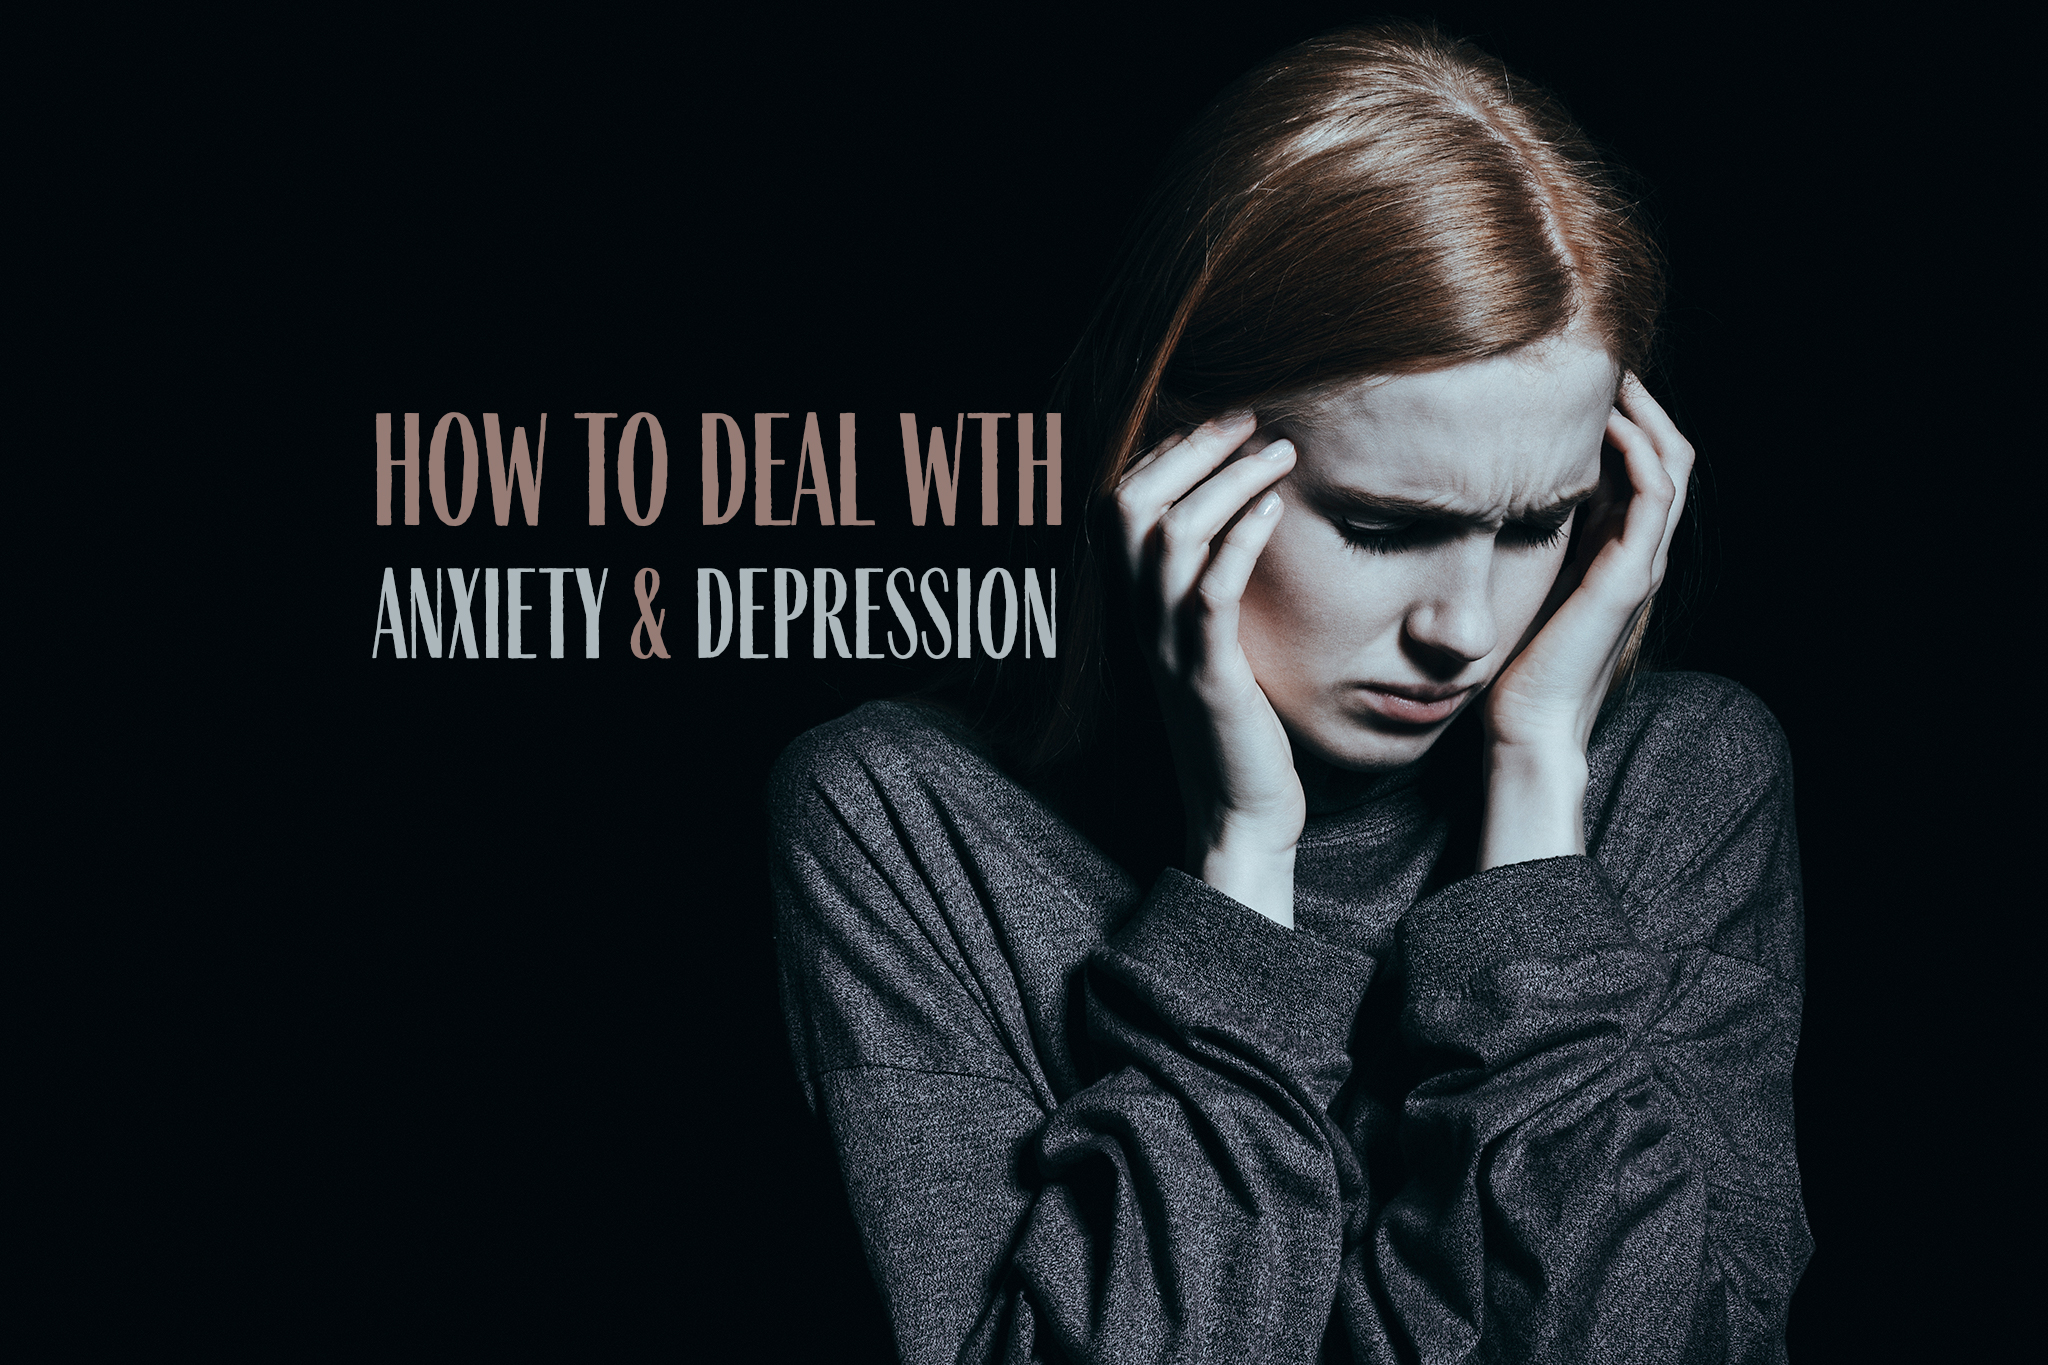 How to deal with anxiety and depression